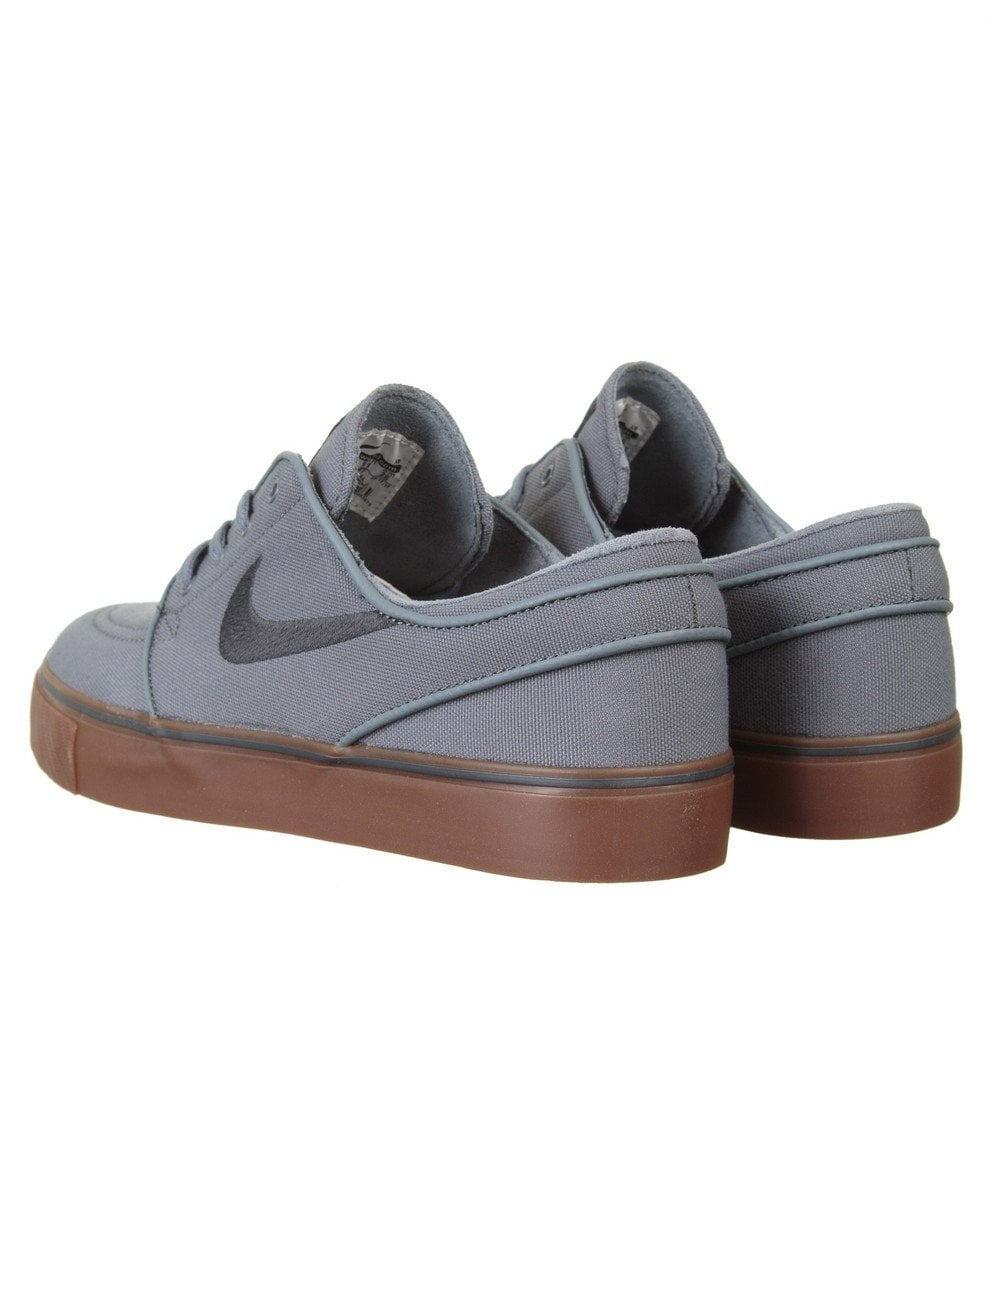 Stefan Janoski Shoes - Cool Grey/Gum Sole